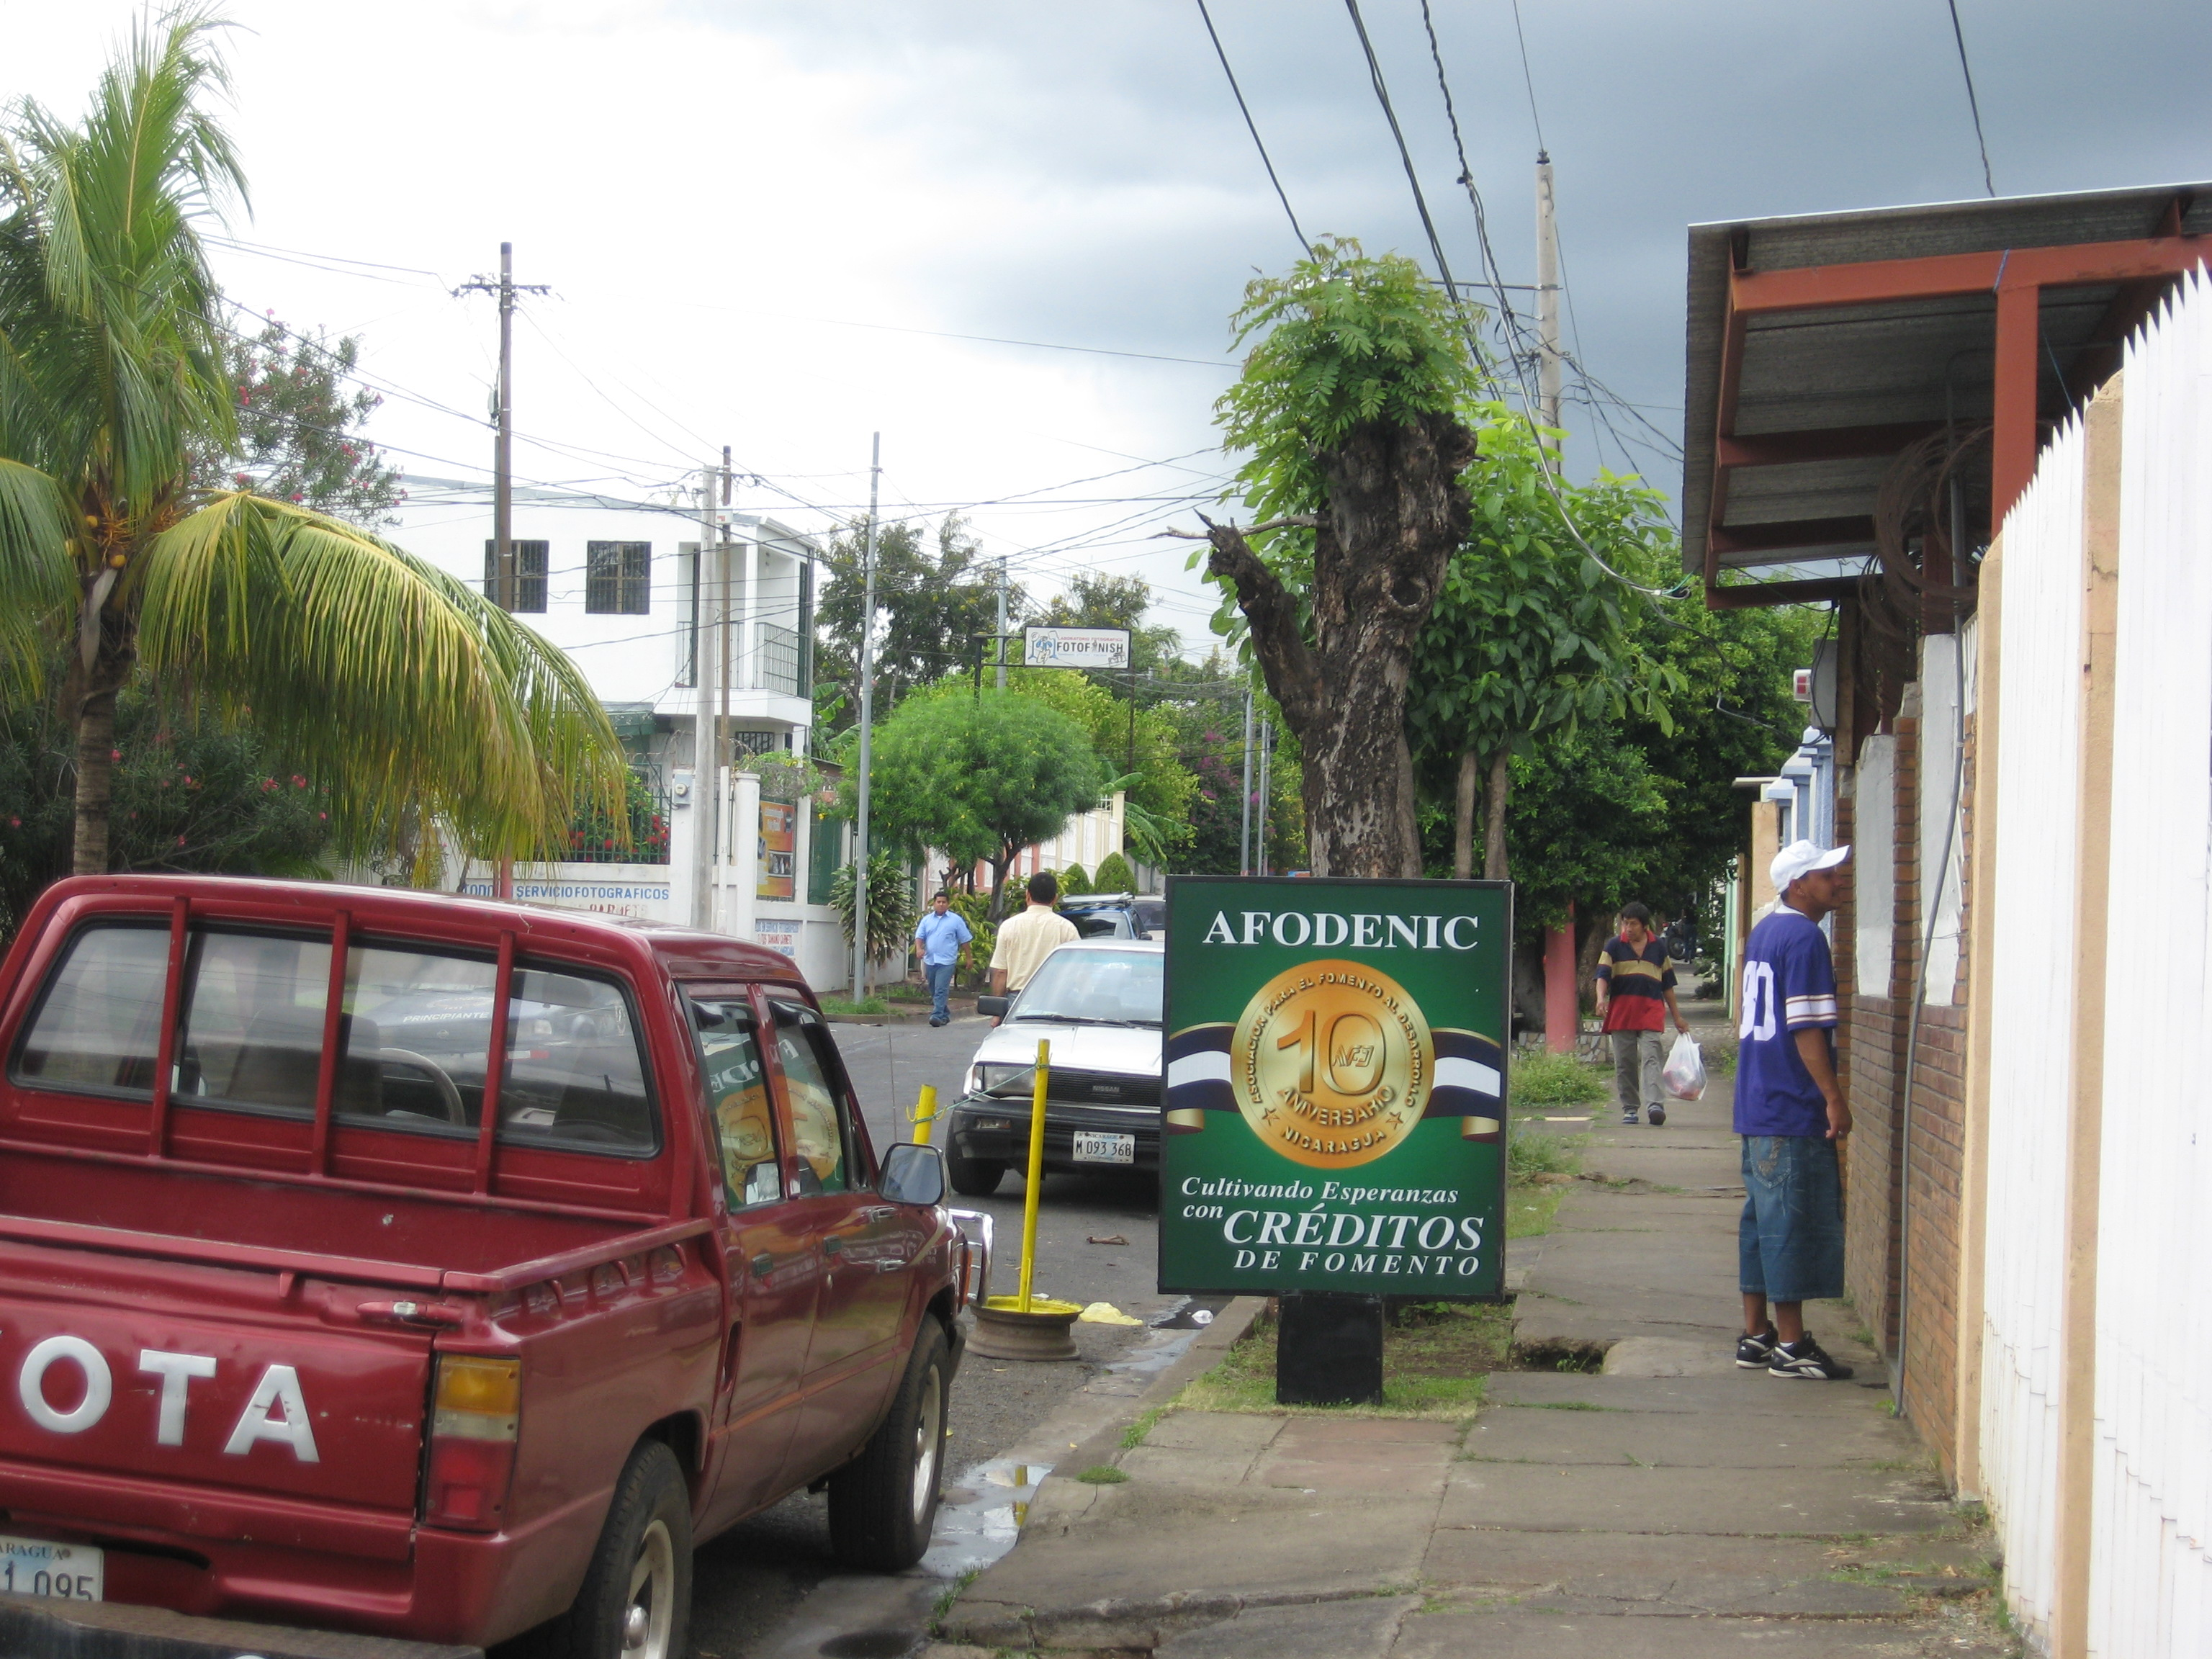 This is the street where my MFI, AFDOENIC, is. It doesn't have a name.